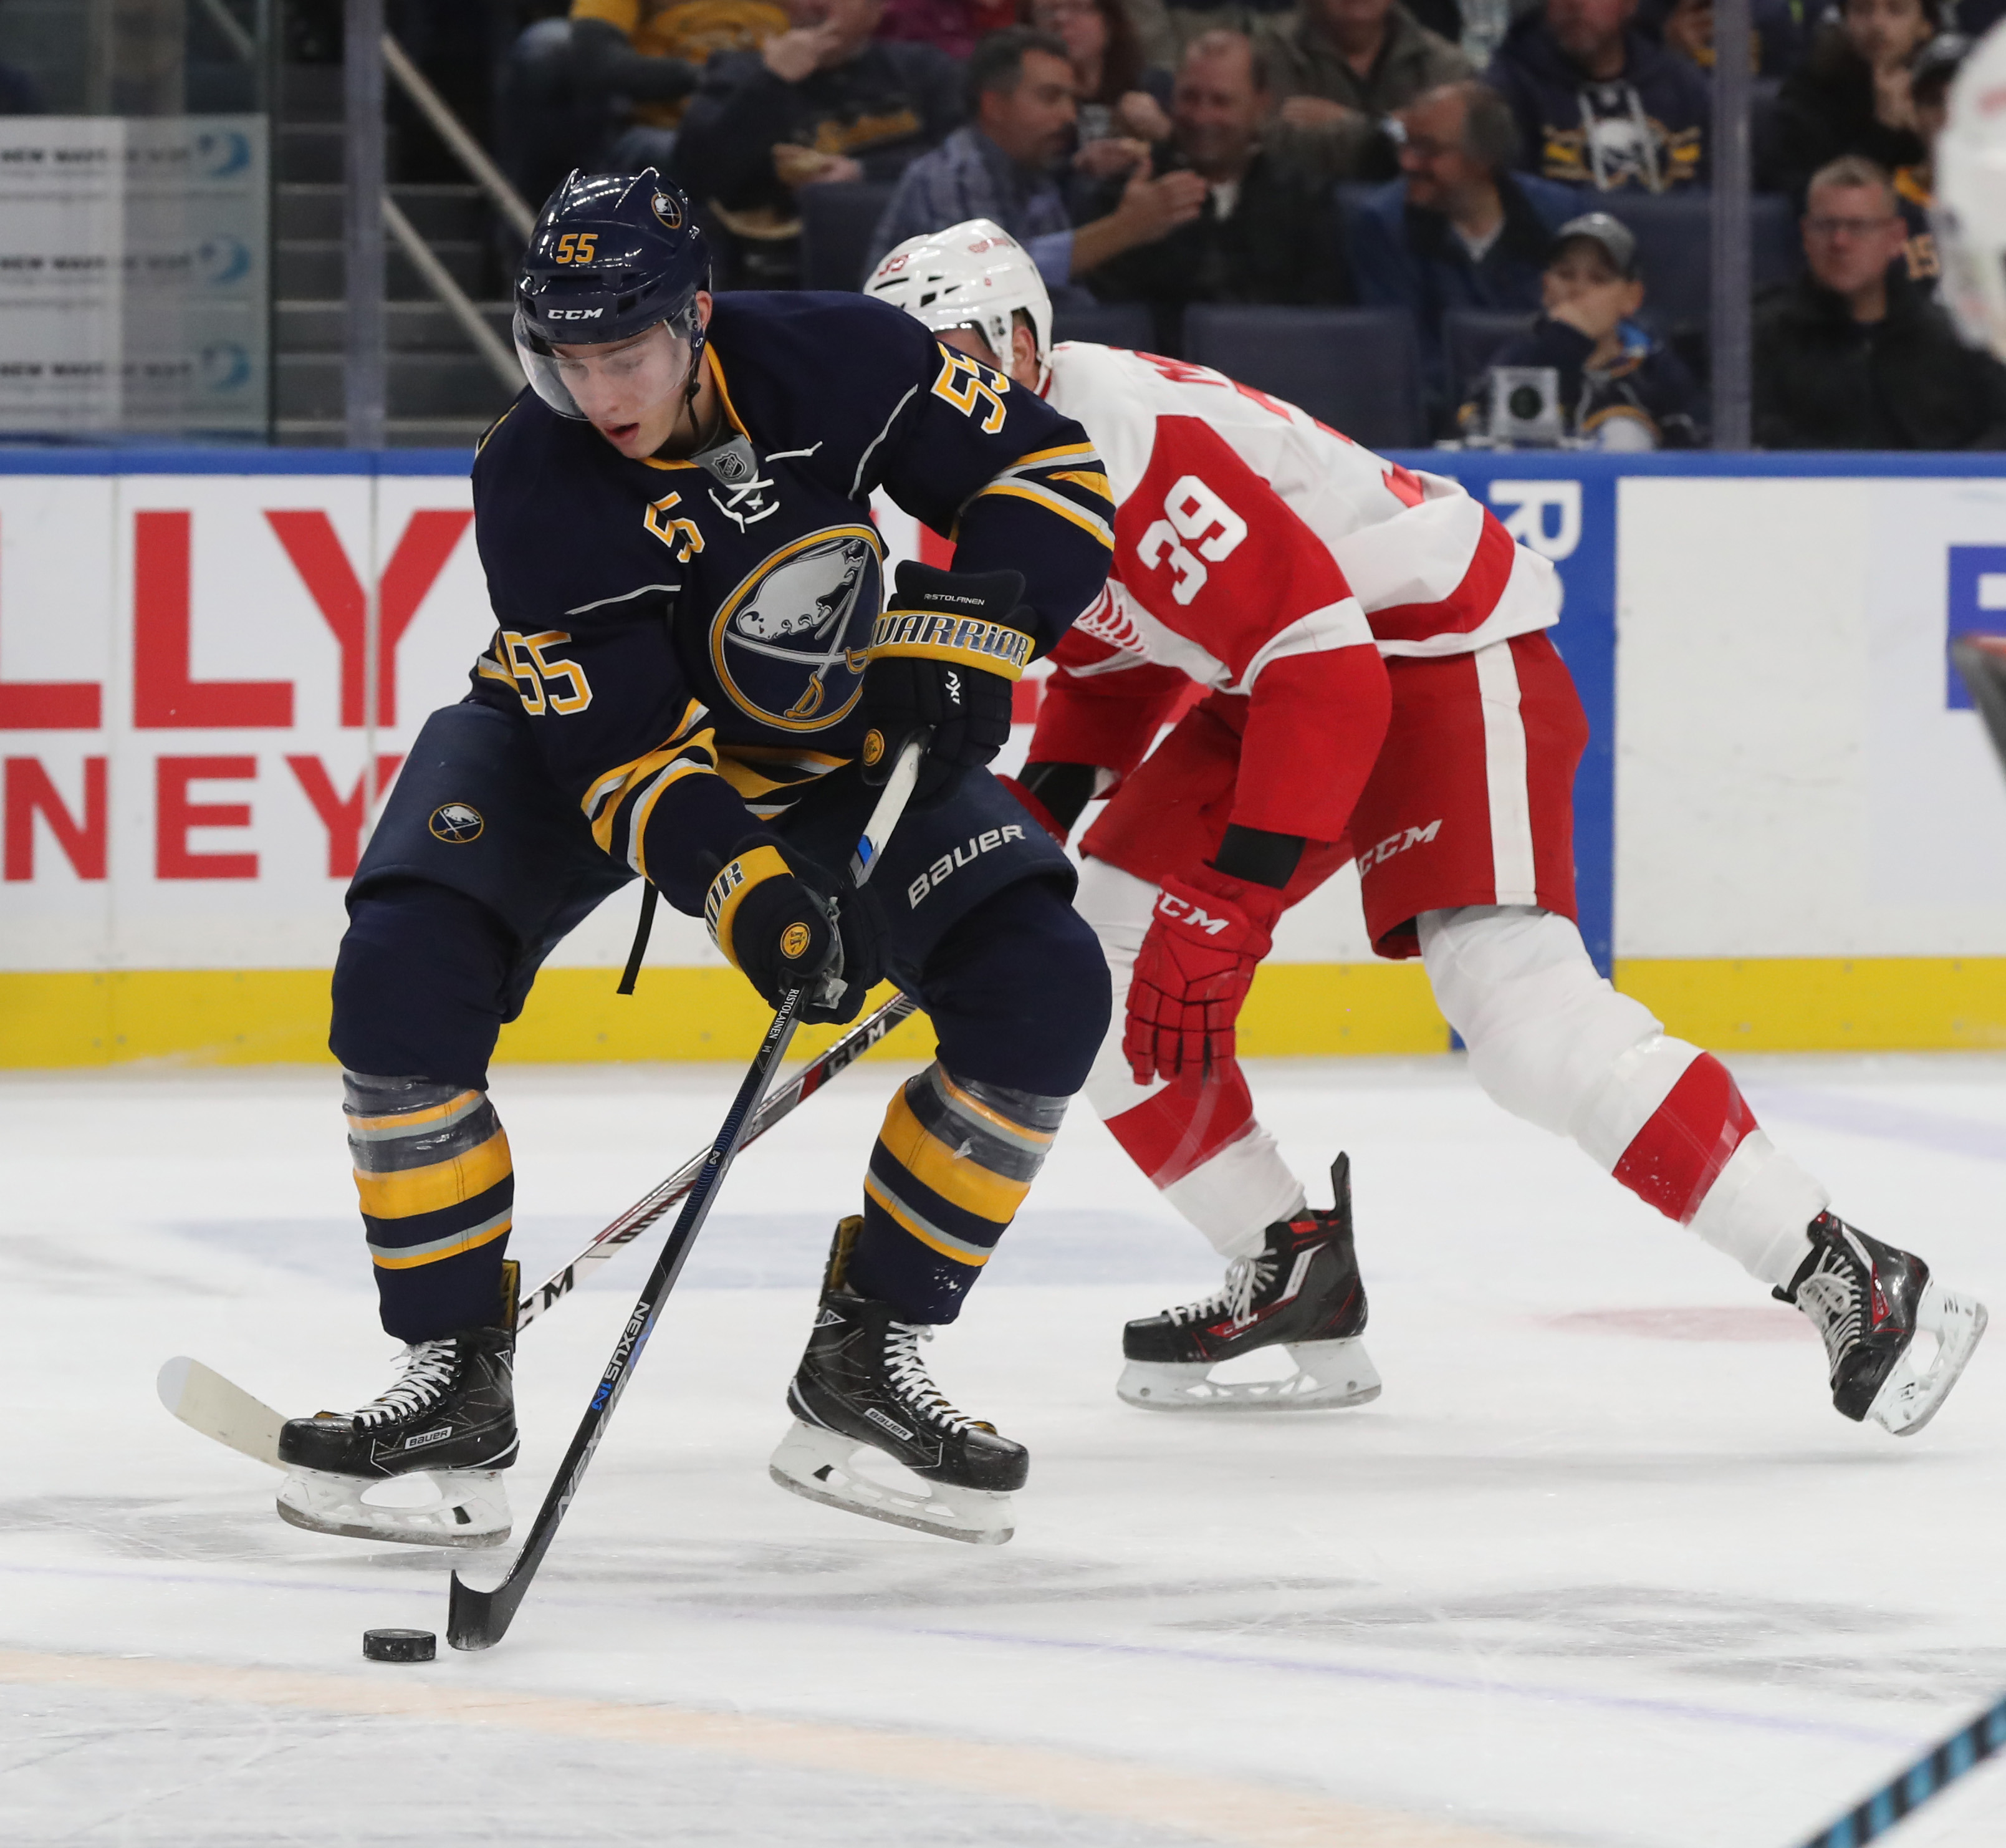 Sabres defenseman is among the NHL leaders in ice time but needs his first goal. (James P. McCoy/Buffalo News)